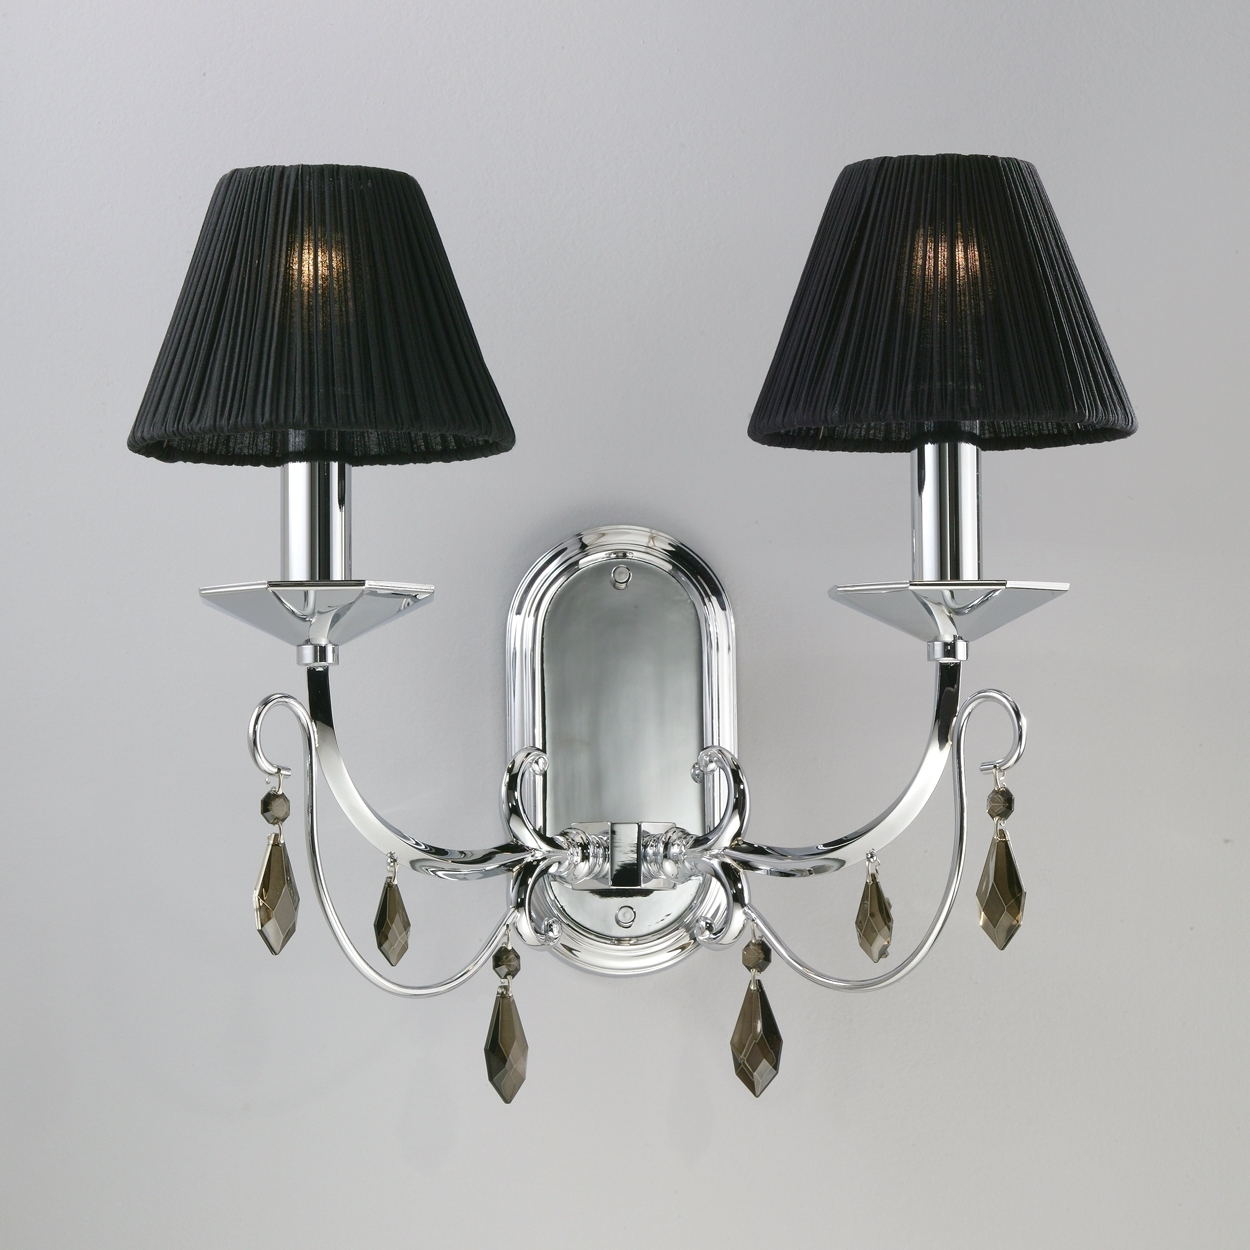 Black Clip On Lamp Shades – Lamp Design Ideas Regarding Well Known Chandelier Lamp Shades Clip On (View 2 of 20)